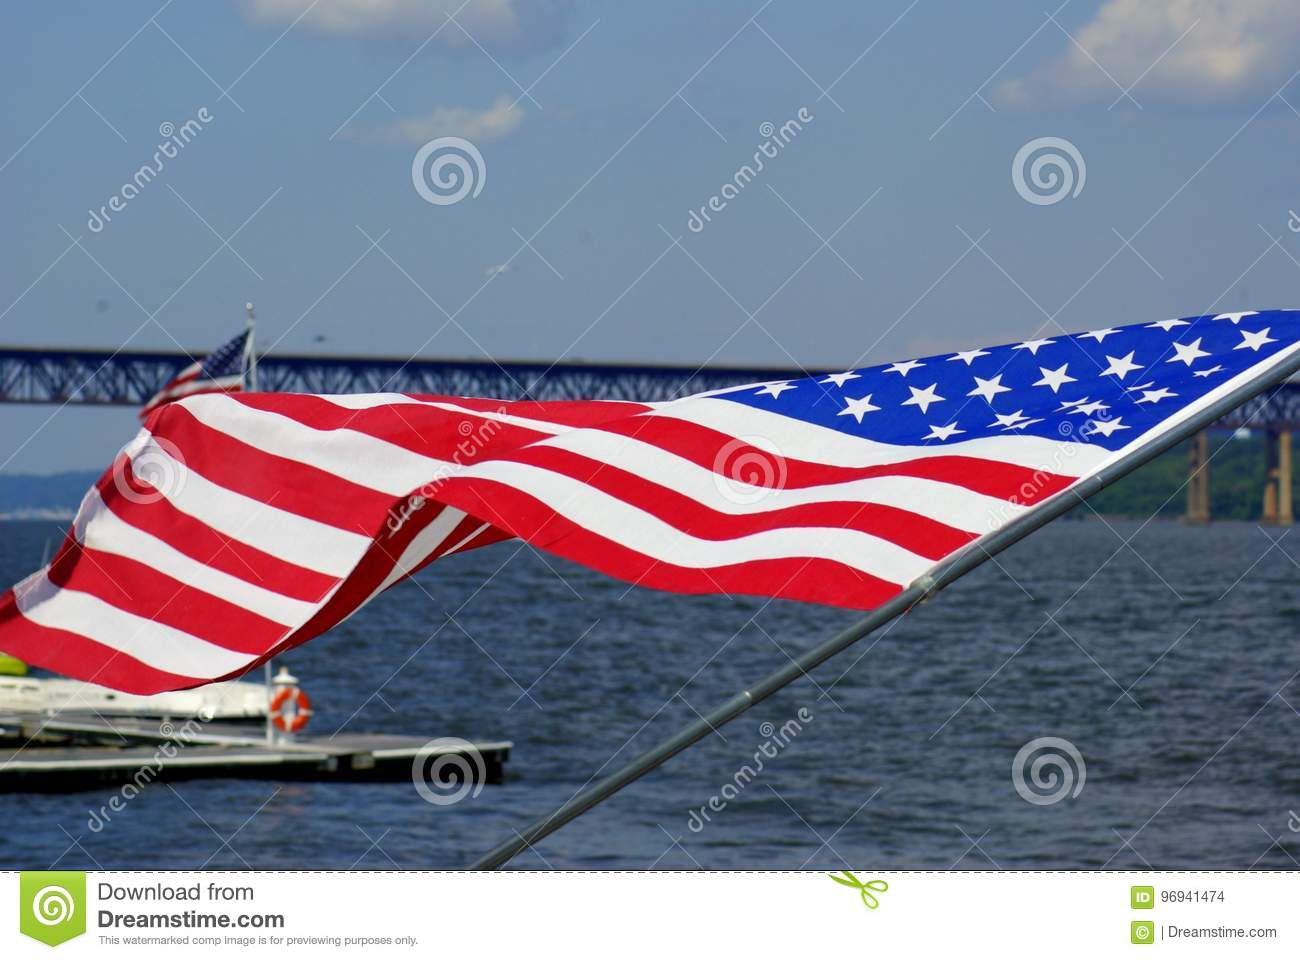 American flag fabric ripples in breeze